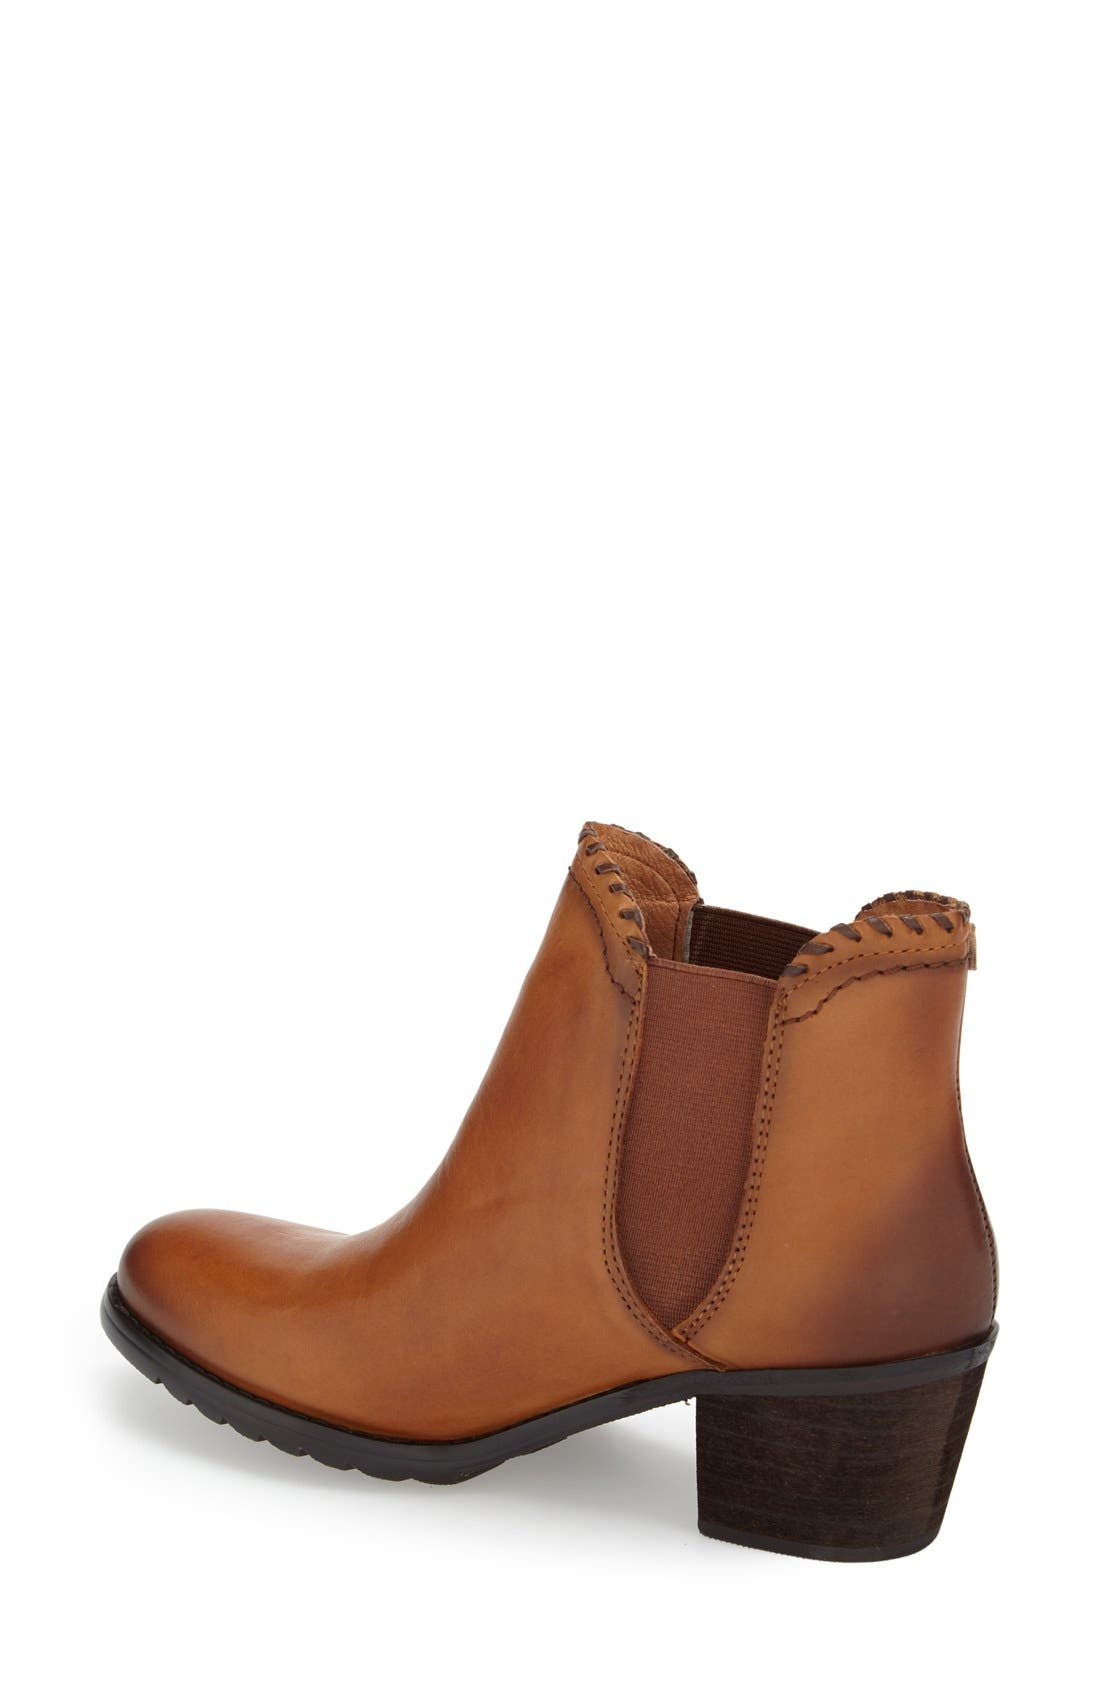 'Andorra' Water Resistant Bootie,                             Alternate thumbnail 2, color,                             Brandy Leather